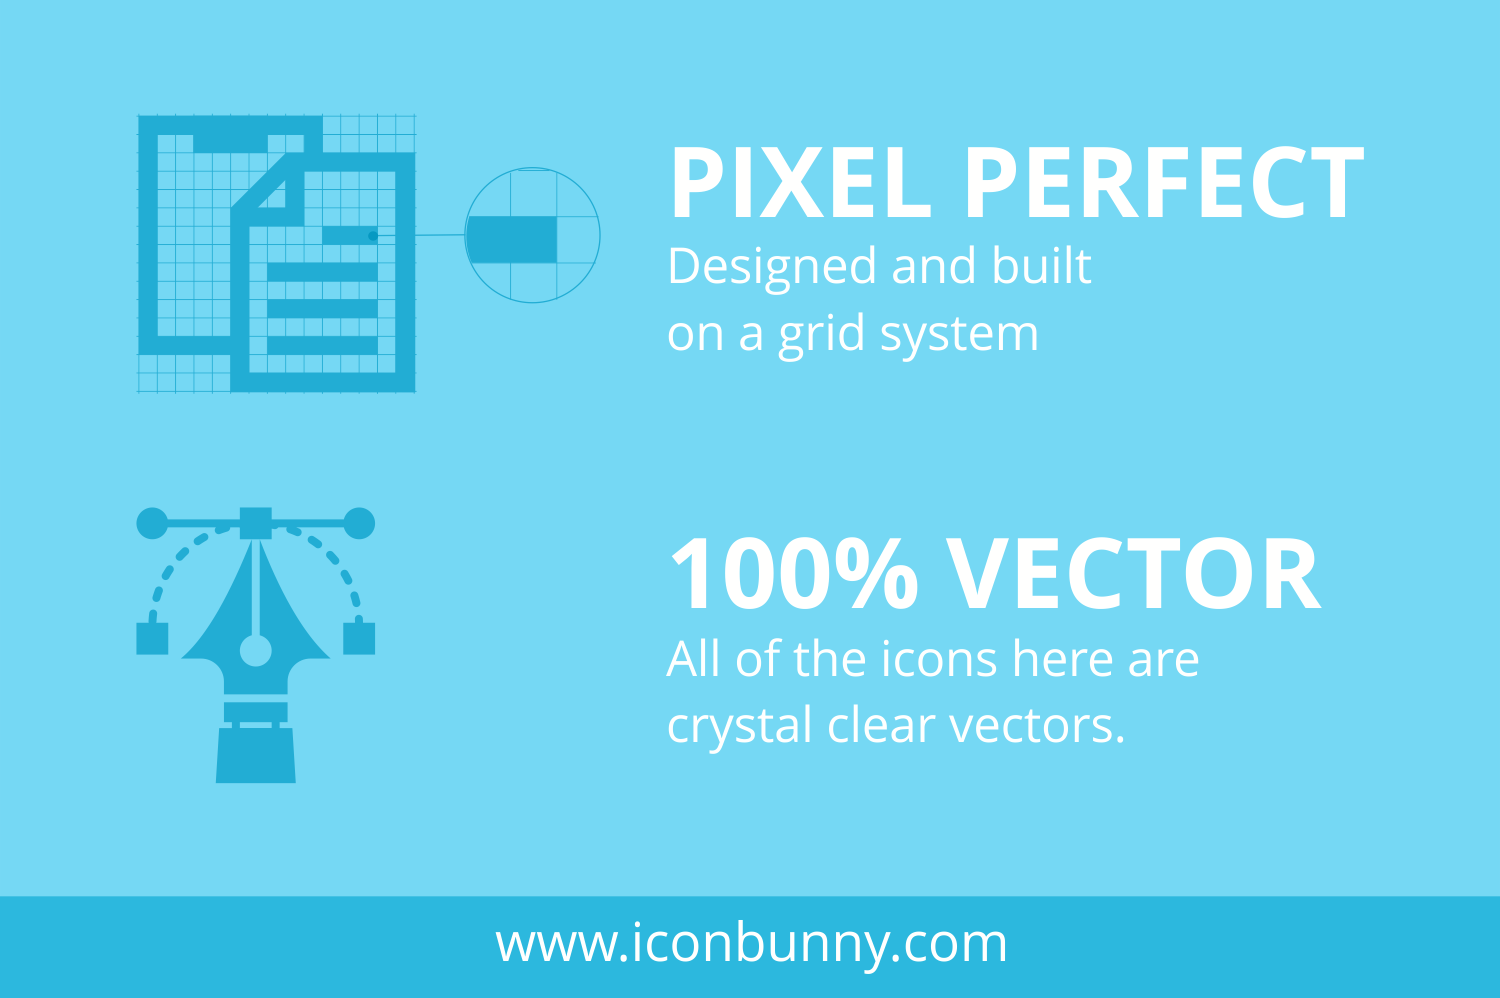 111 Networking & Printers Filled Low Poly Icons example image 6